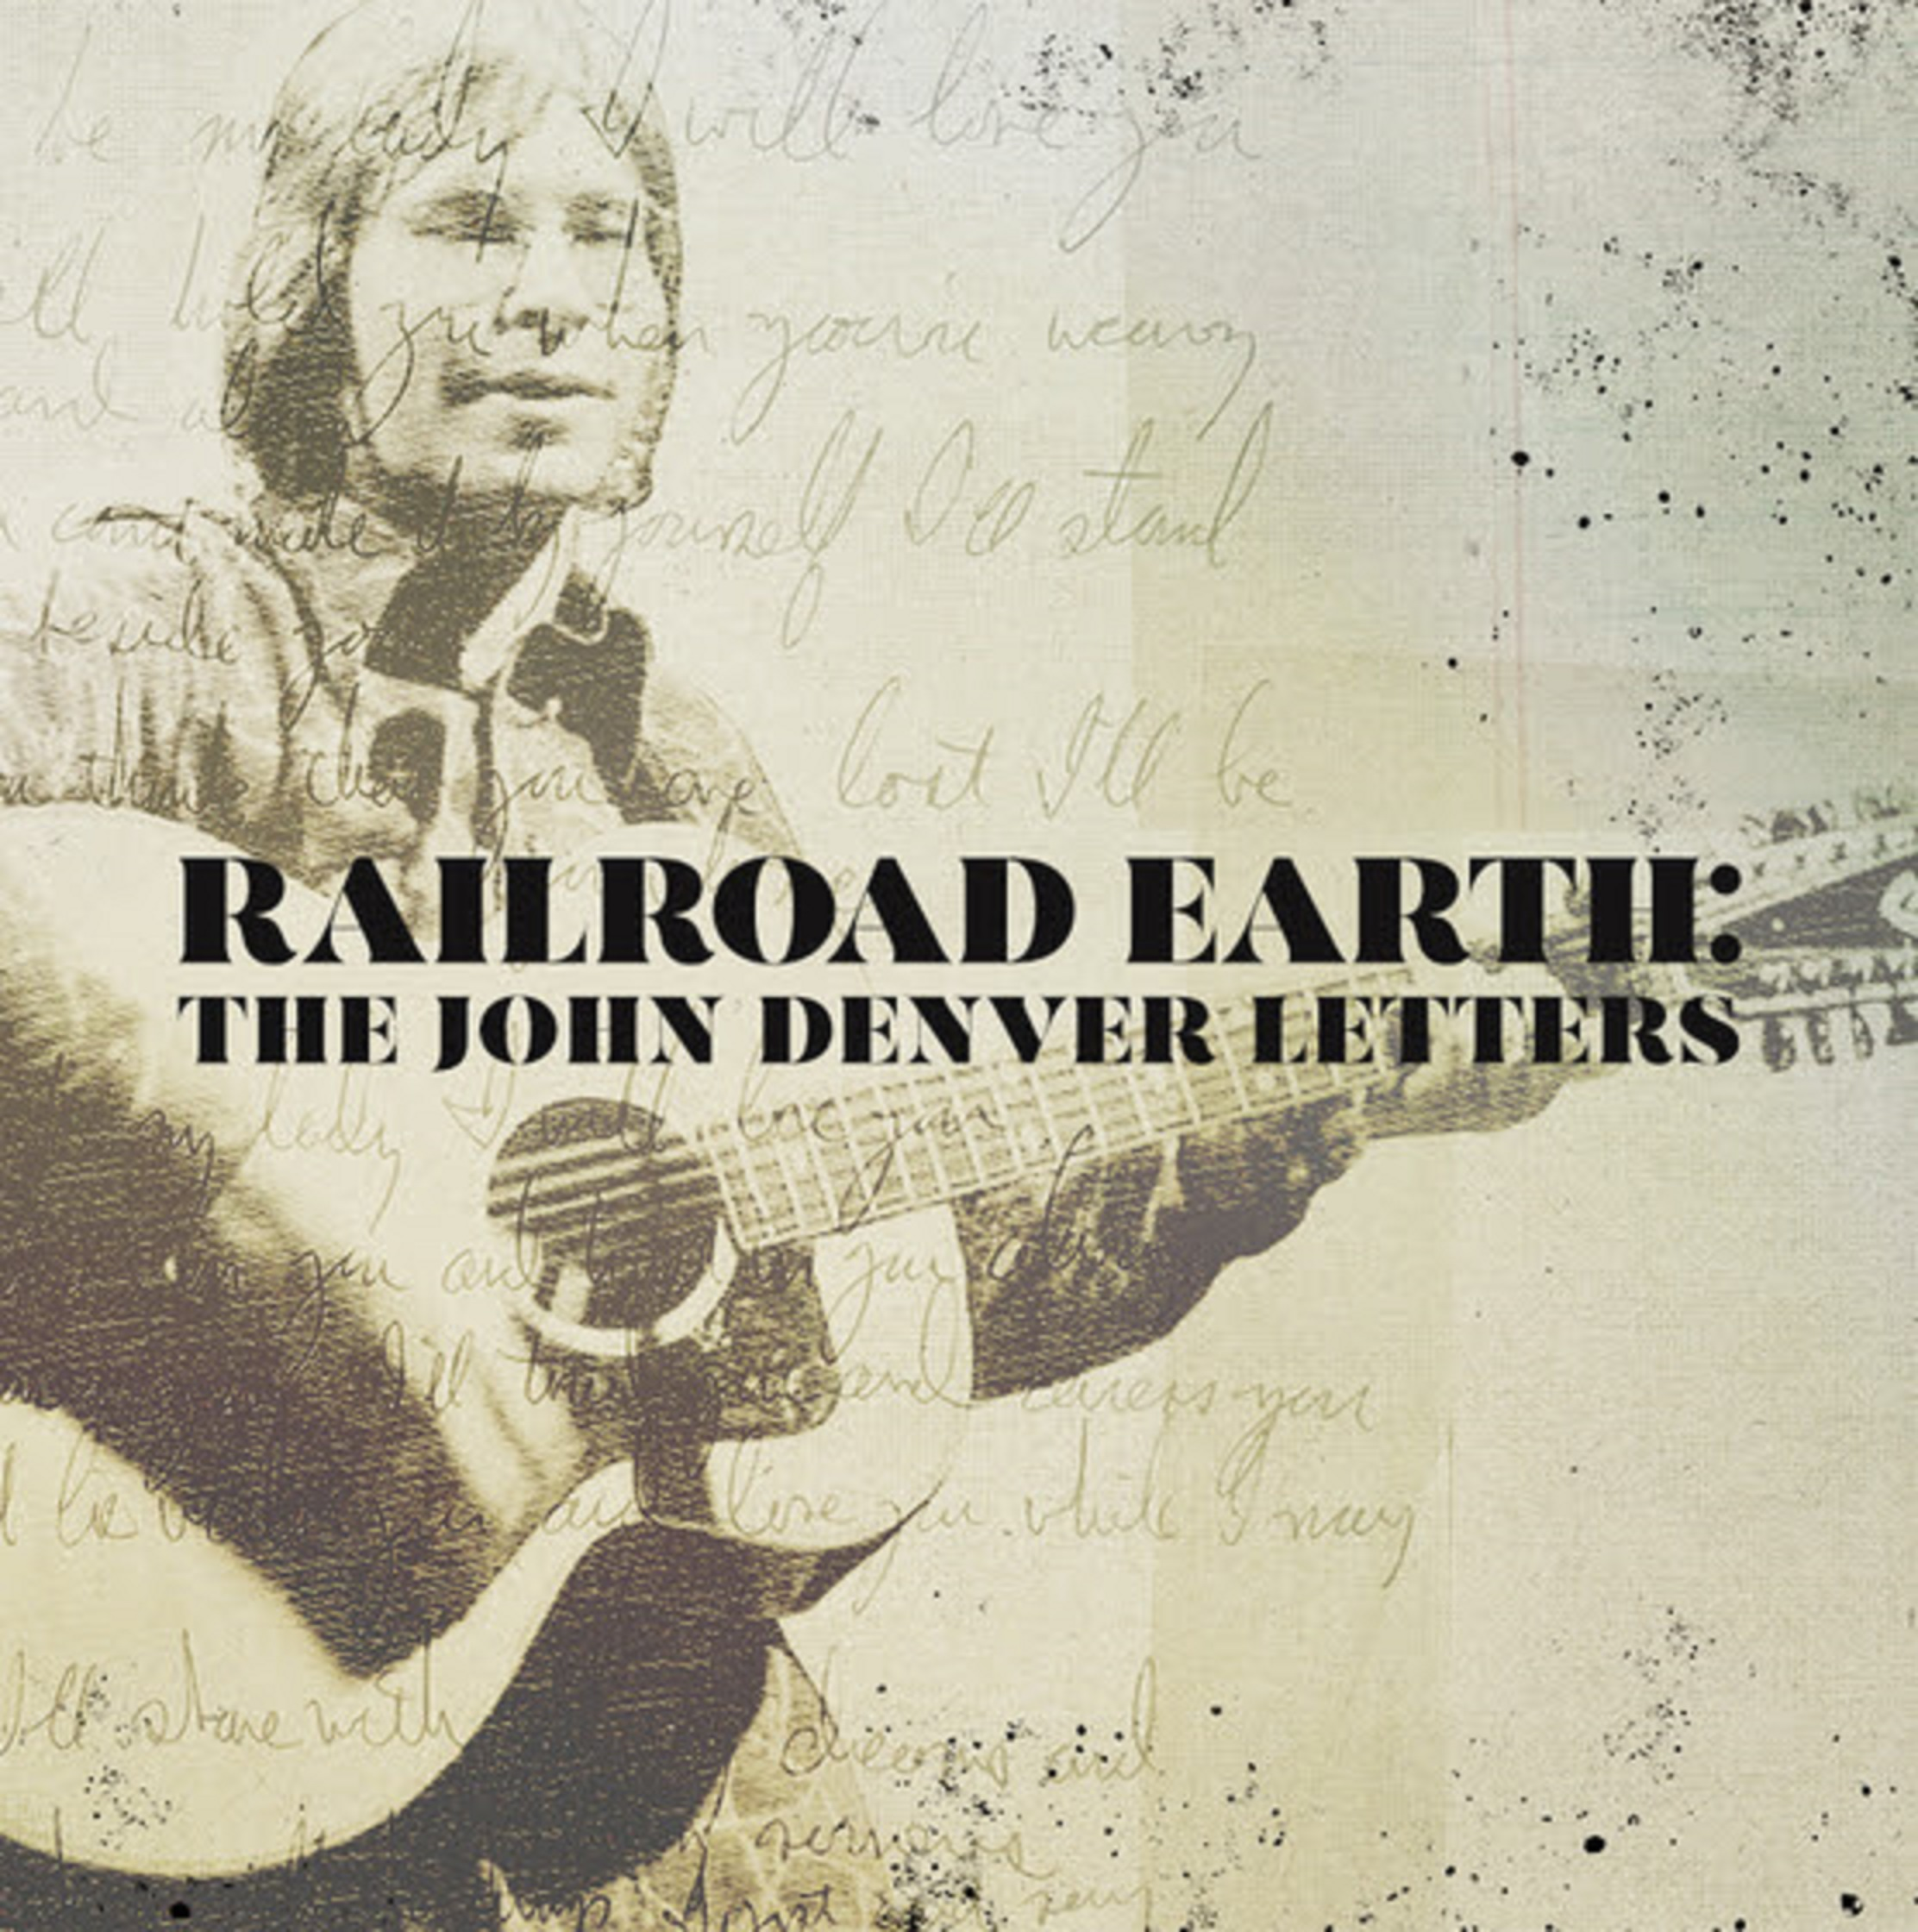 Newly Discovered Lyrics By John Denver Set To Music By Railroad Earth For Earth Day